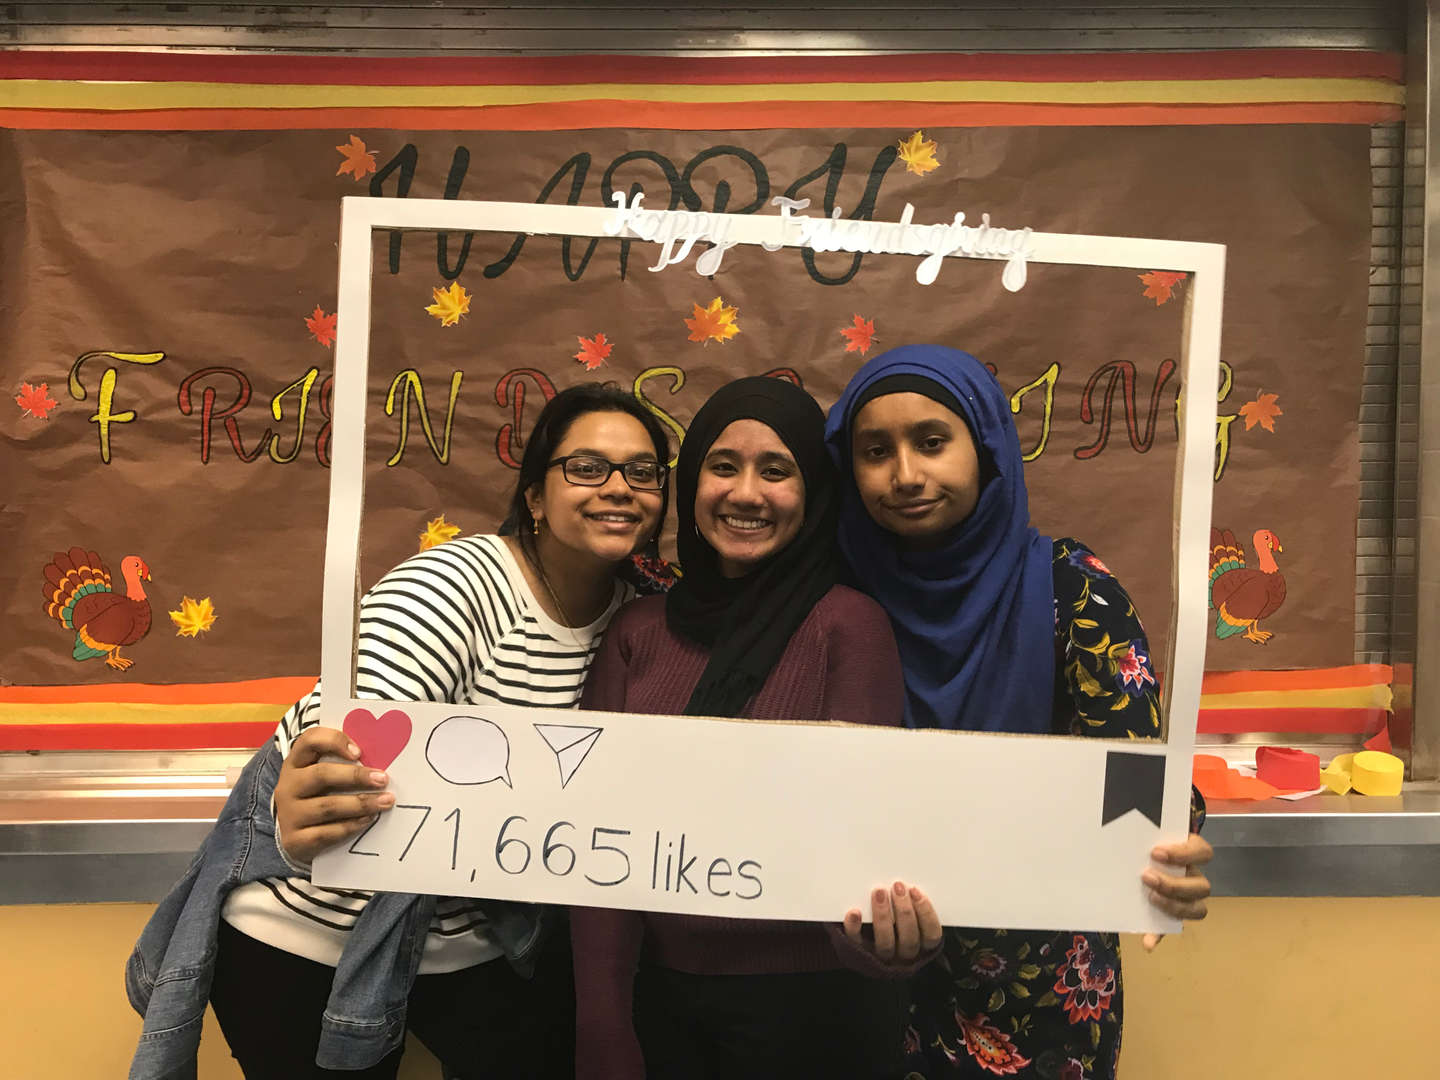 Students posing in a social media frame prop